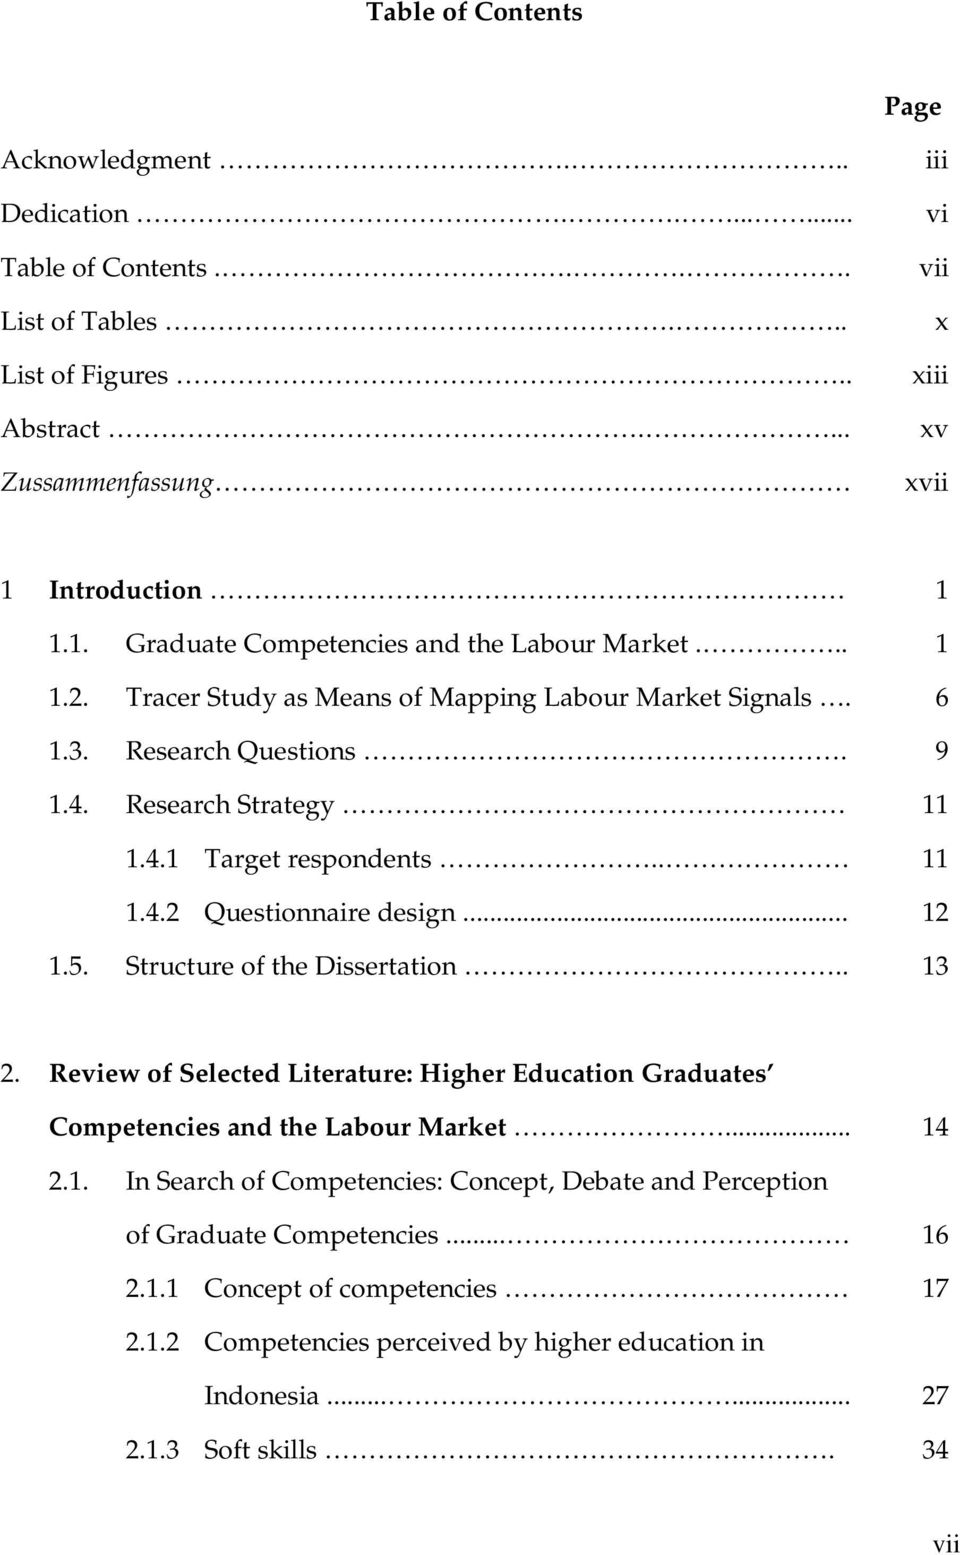 . 11 1.4.2 Questionnaire design... 12 1.5. Structure of the Dissertation.. 13 2. Review of Selected Literature: Higher Education Graduates Competencies and the Labour Market... 14 2.1. In Search of Competencies: Concept, Debate and Perception of Graduate Competencies.